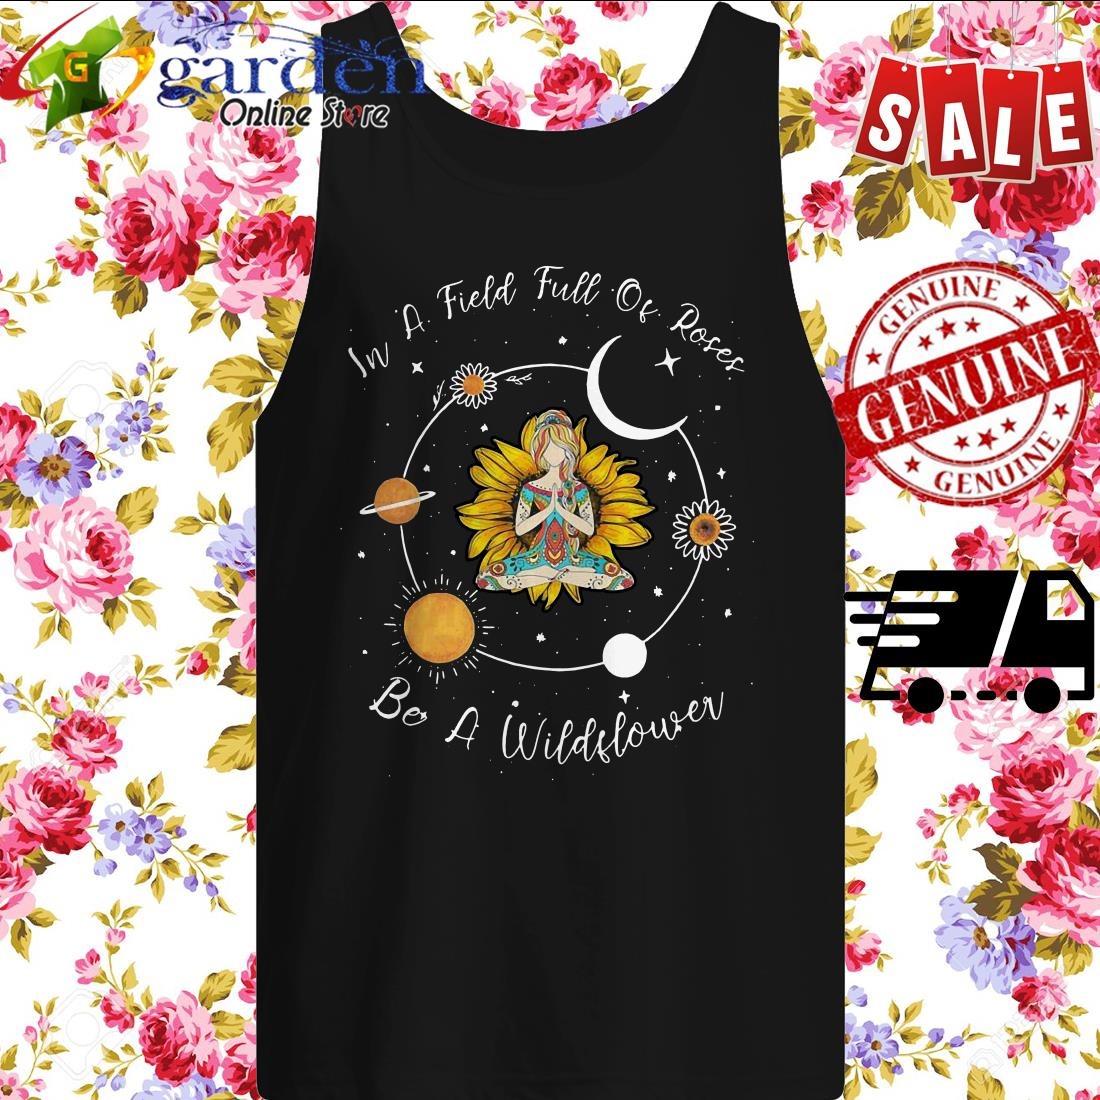 Yoga Girl Sunflower In A Field Full Of Roses Be A Wildflower tank top